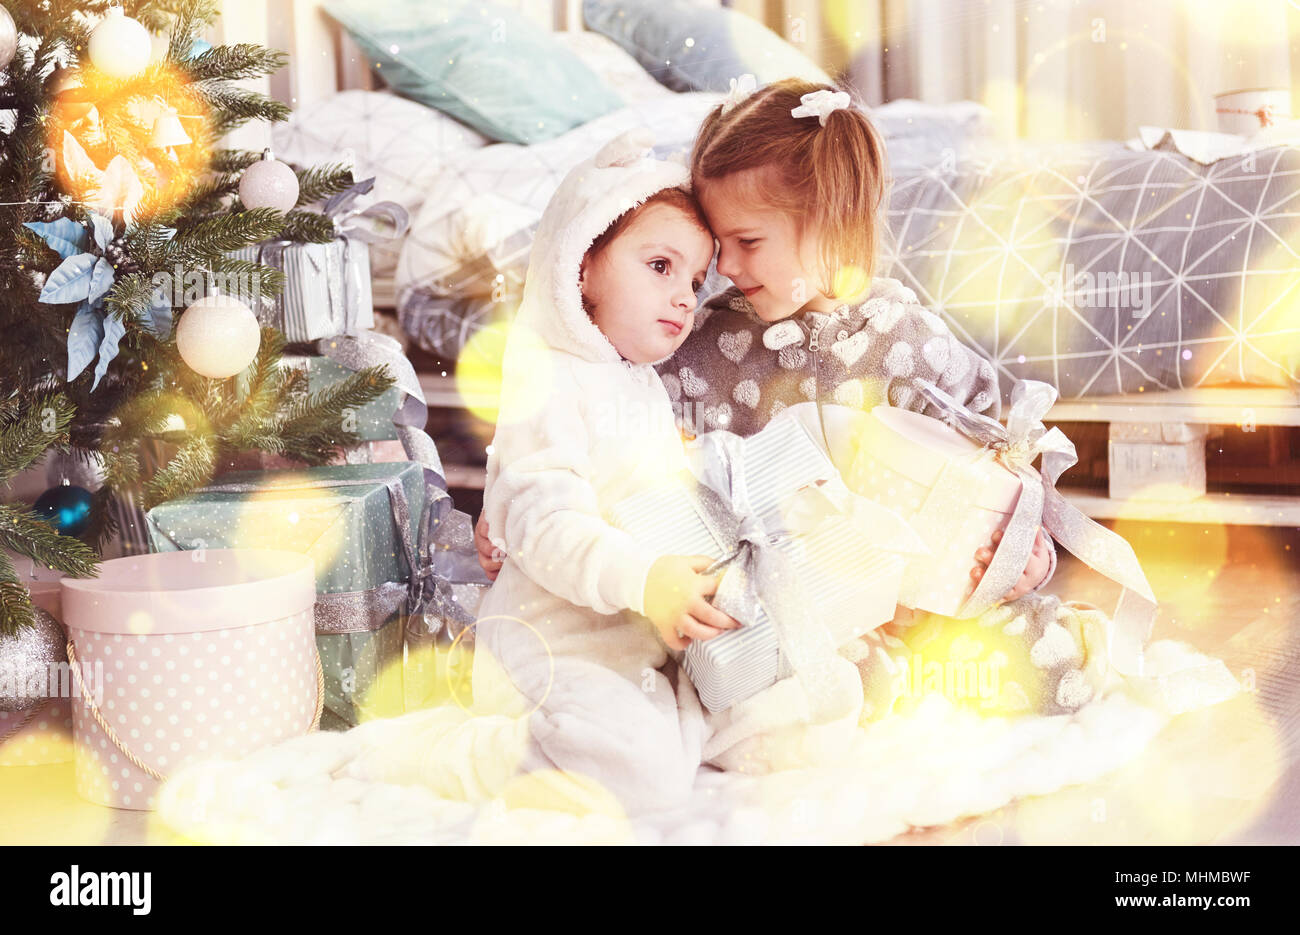 Two little sister girls open their gifts at the Christmas tree in the morning on the deck. - Stock Image